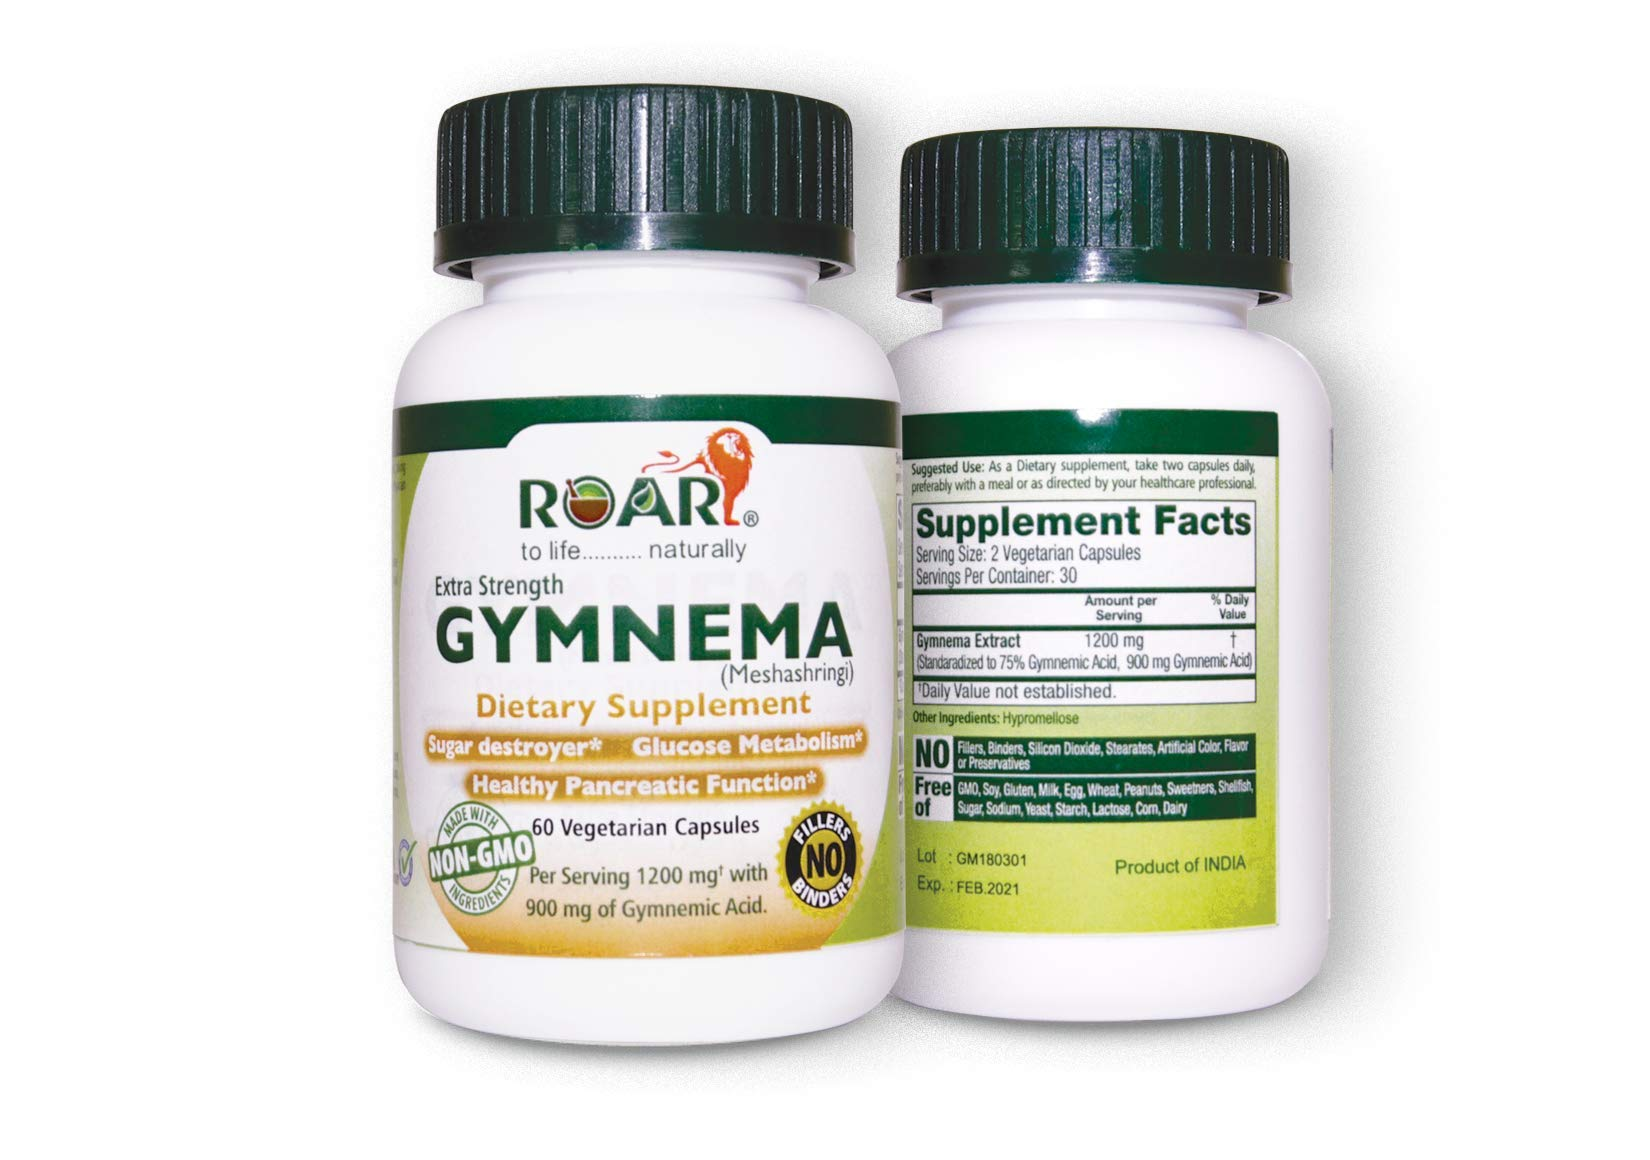 Gymnema Sylvestre 1200 mg (Highest Potency) Extract Veg Capsules with 75% Gymnemic Acids as Sugar Destroyer & for Blood Sugar Support & Healthy Glucose Metabolism